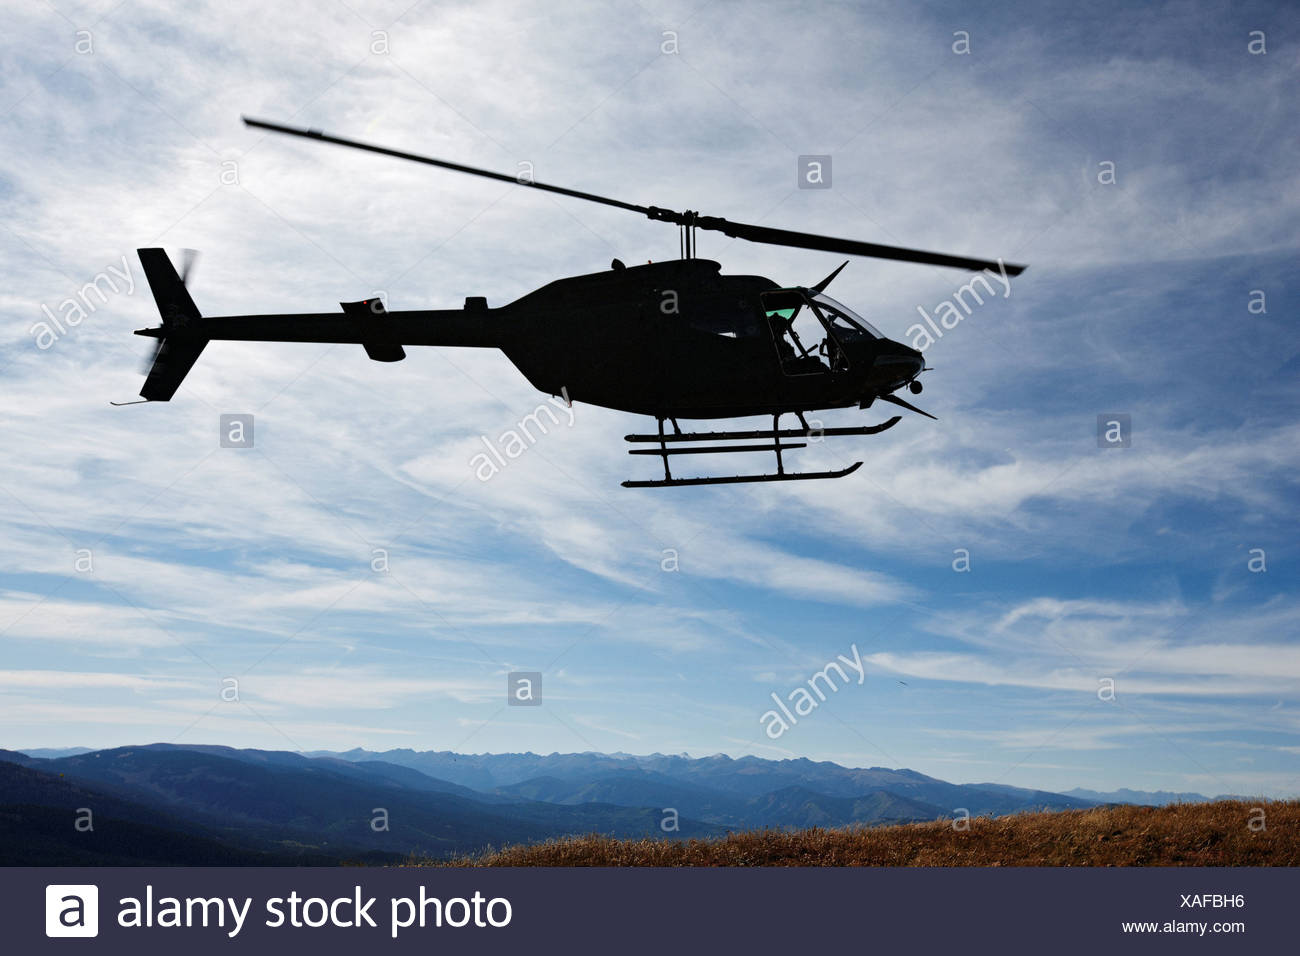 Silhouette of a U.S. Army National Guard OH-58 Kiowa in Colorado's Rocky Mountains. - Stock Image